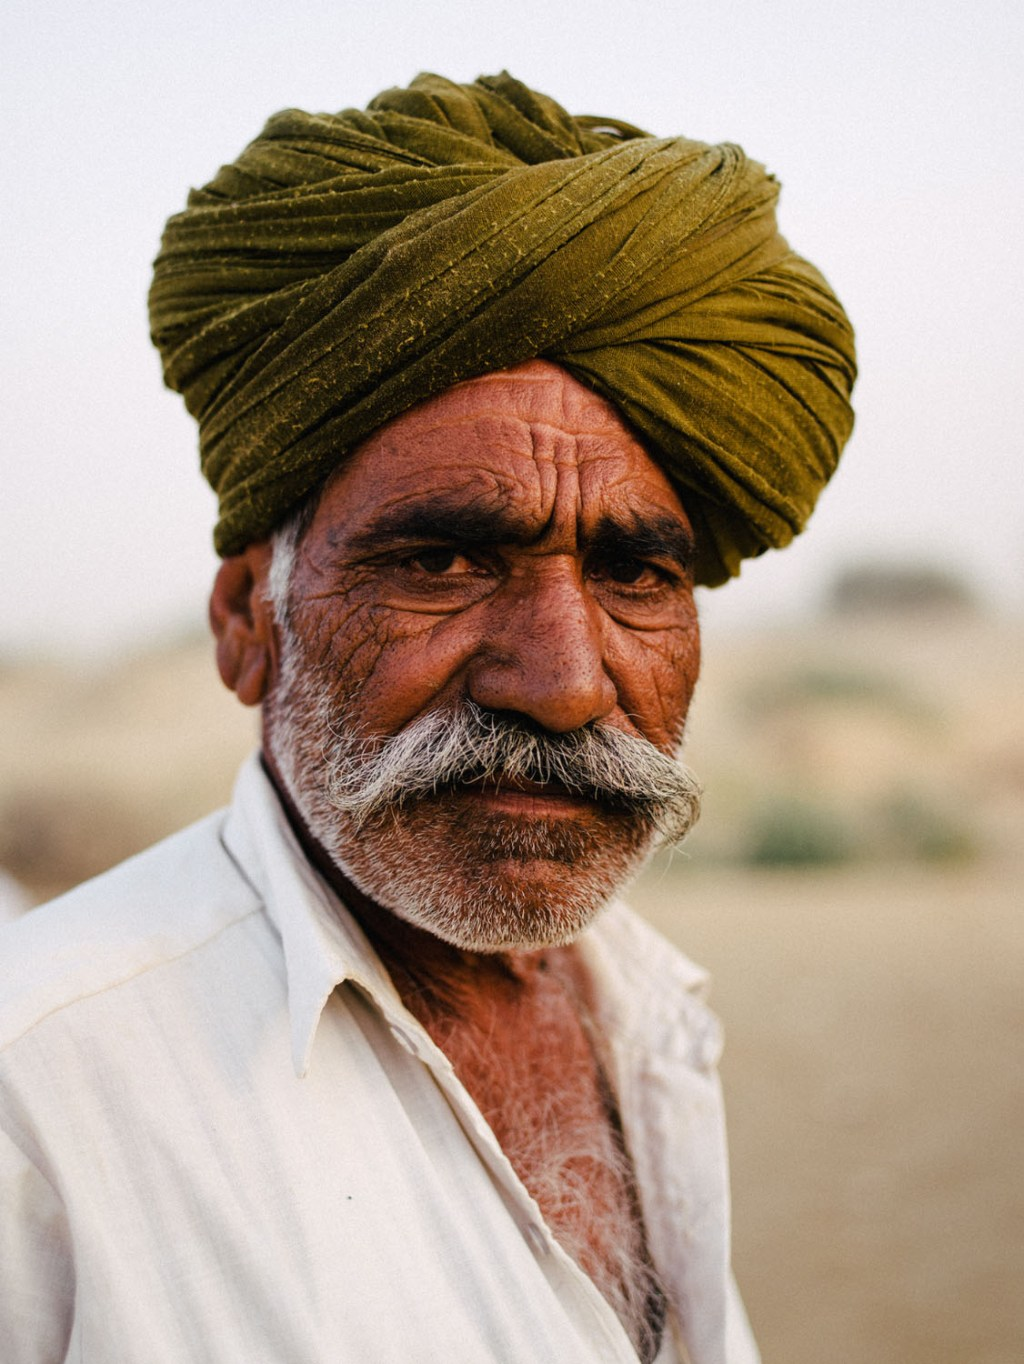 Portrait Indian man - 7 Tips to Make Travel Photography Interesting Again